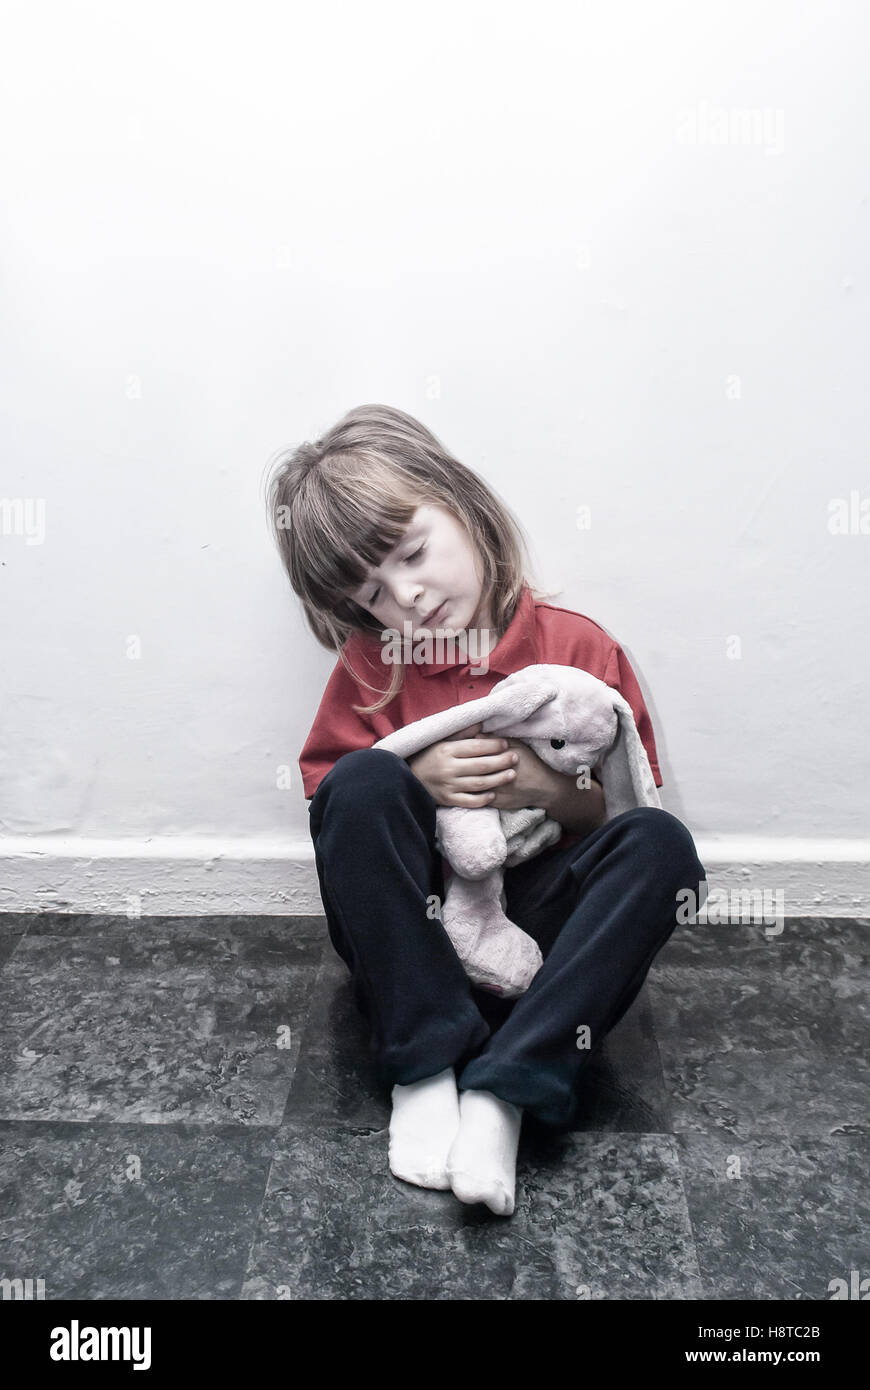 A young four year old little girl sitting on the floor with an old toy looking sad. - Stock Image